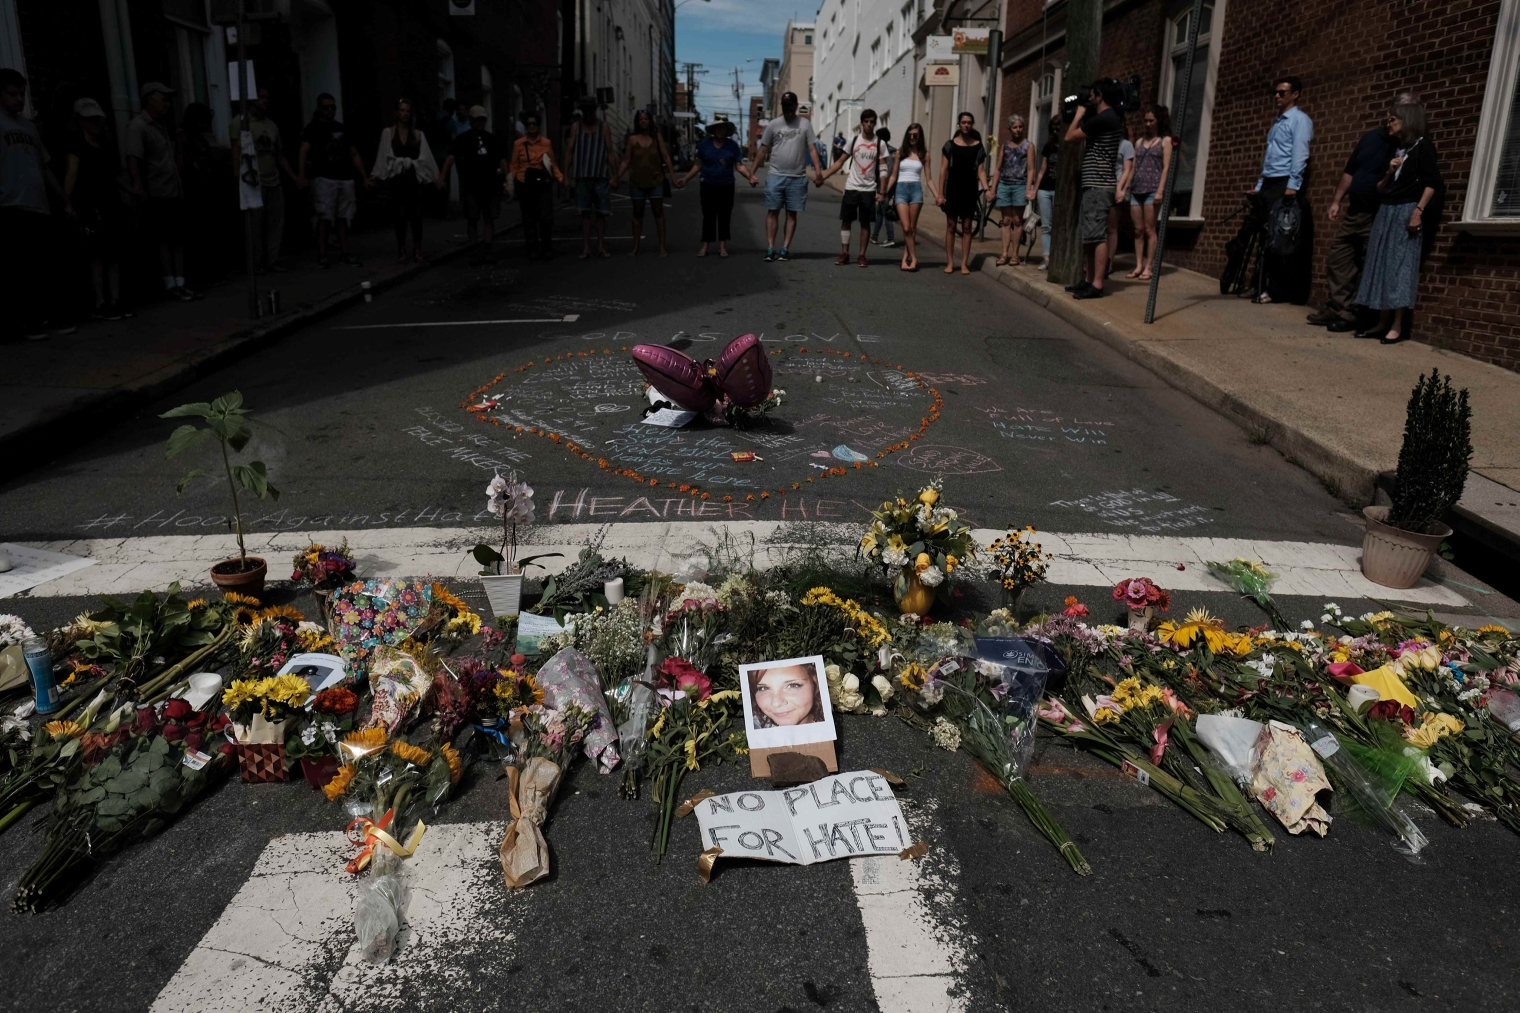 Flowers and a photo of car-ramming victim Heather Heyer lie at a makeshift memorial in Charlottesville, Va., on Aug. 13, 2017.